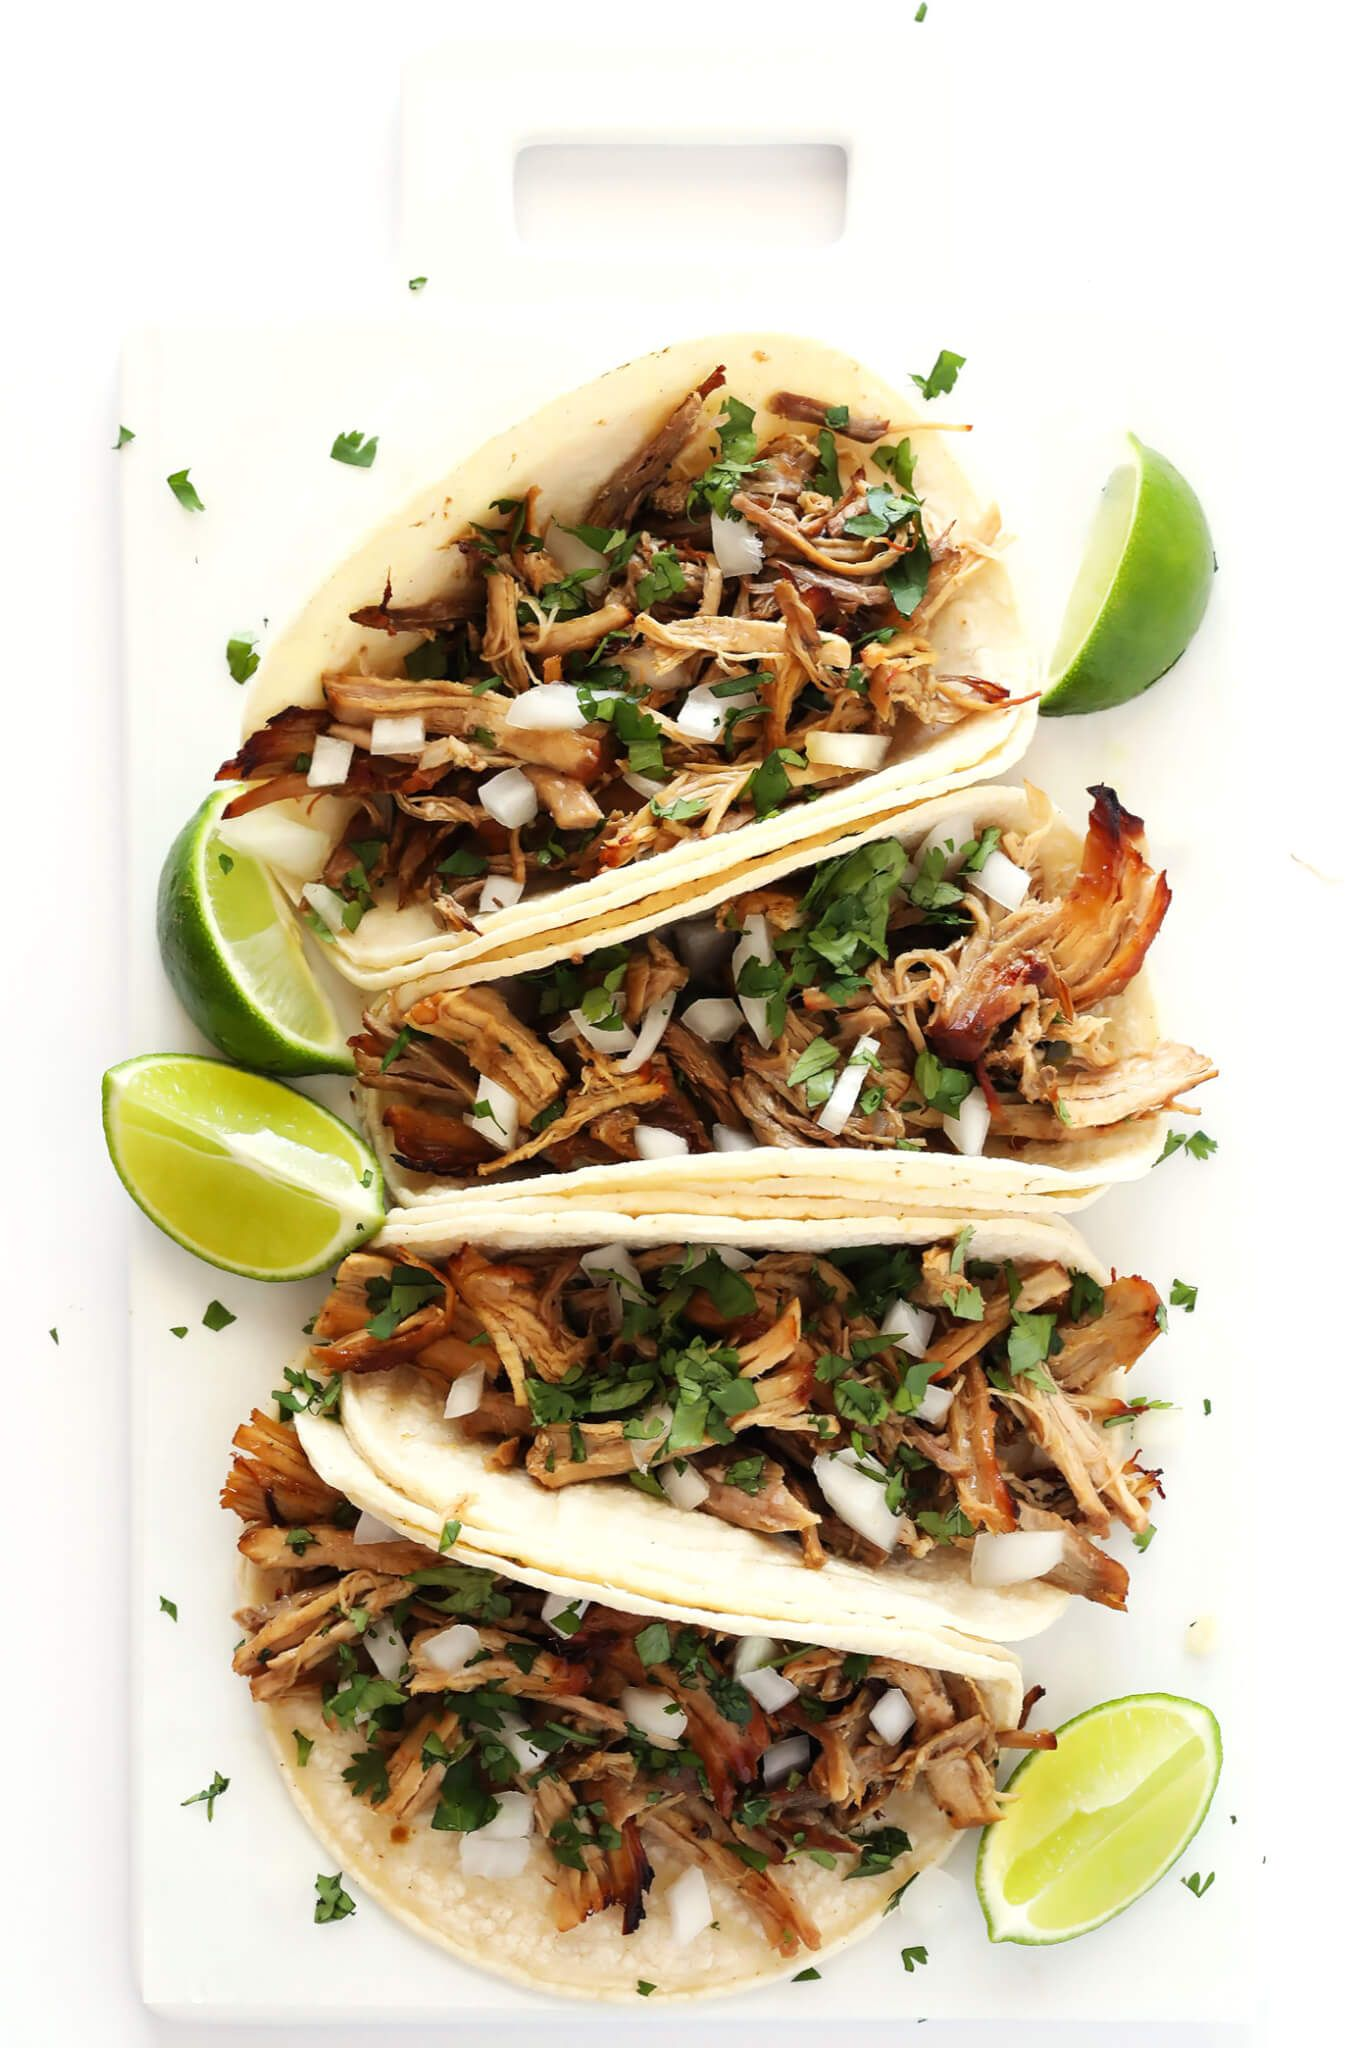 Slow-Cooker-Pork-Carnitas-Recipe-6.jpg